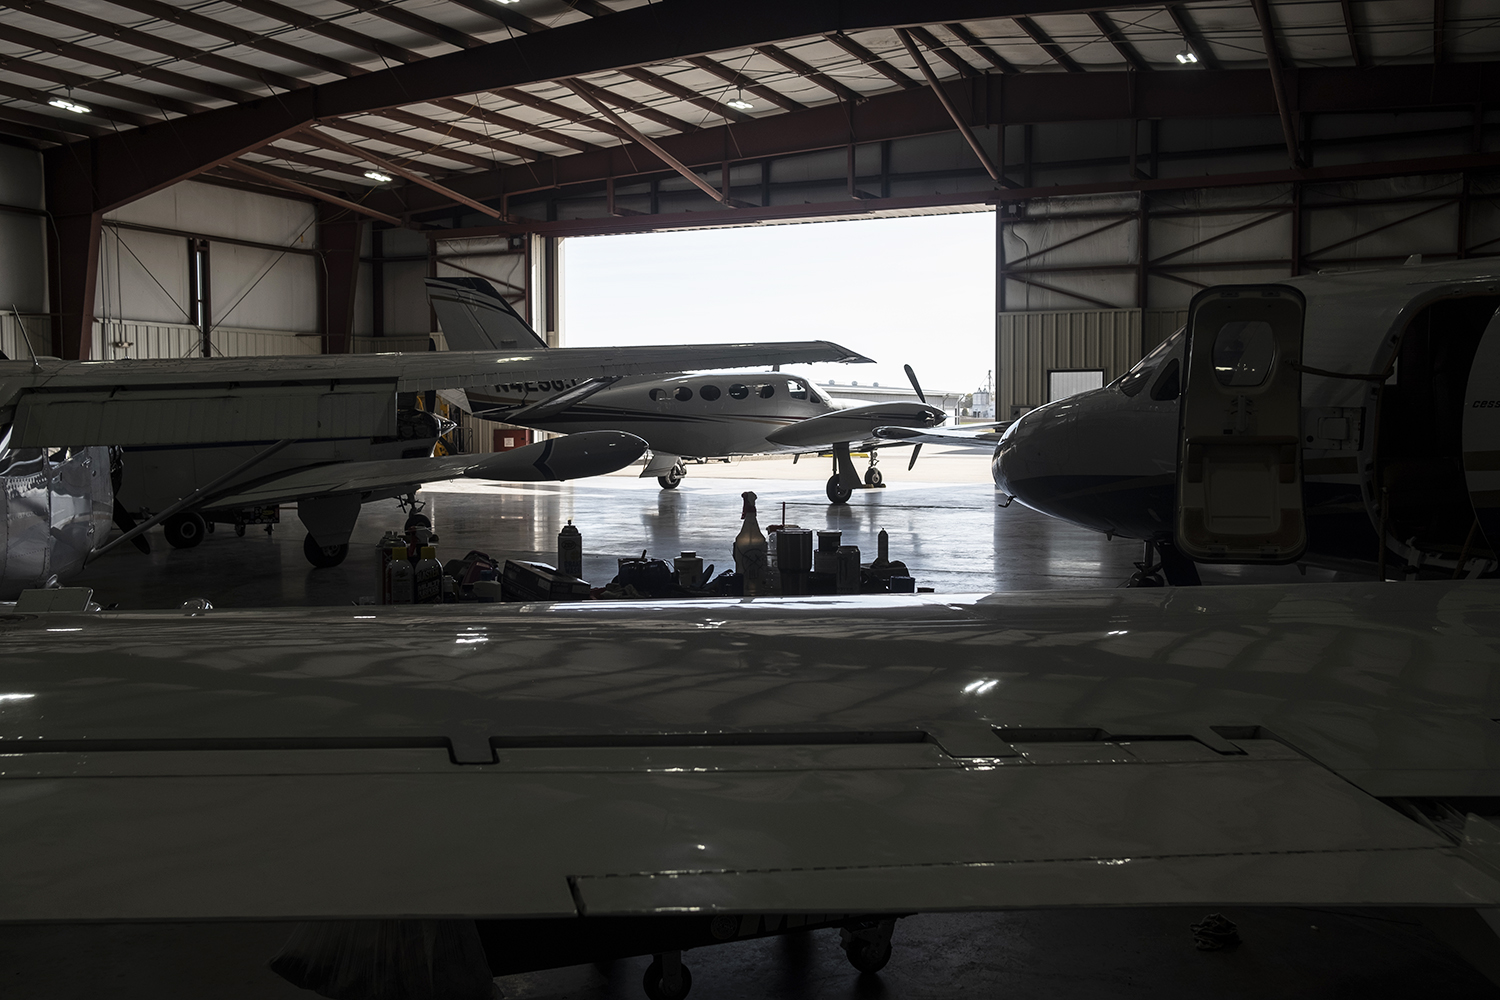 Parked aircraft are seen in a maintenance hanger at the Iowa City Municipal Airport on Wednesday, October 24, 2018.